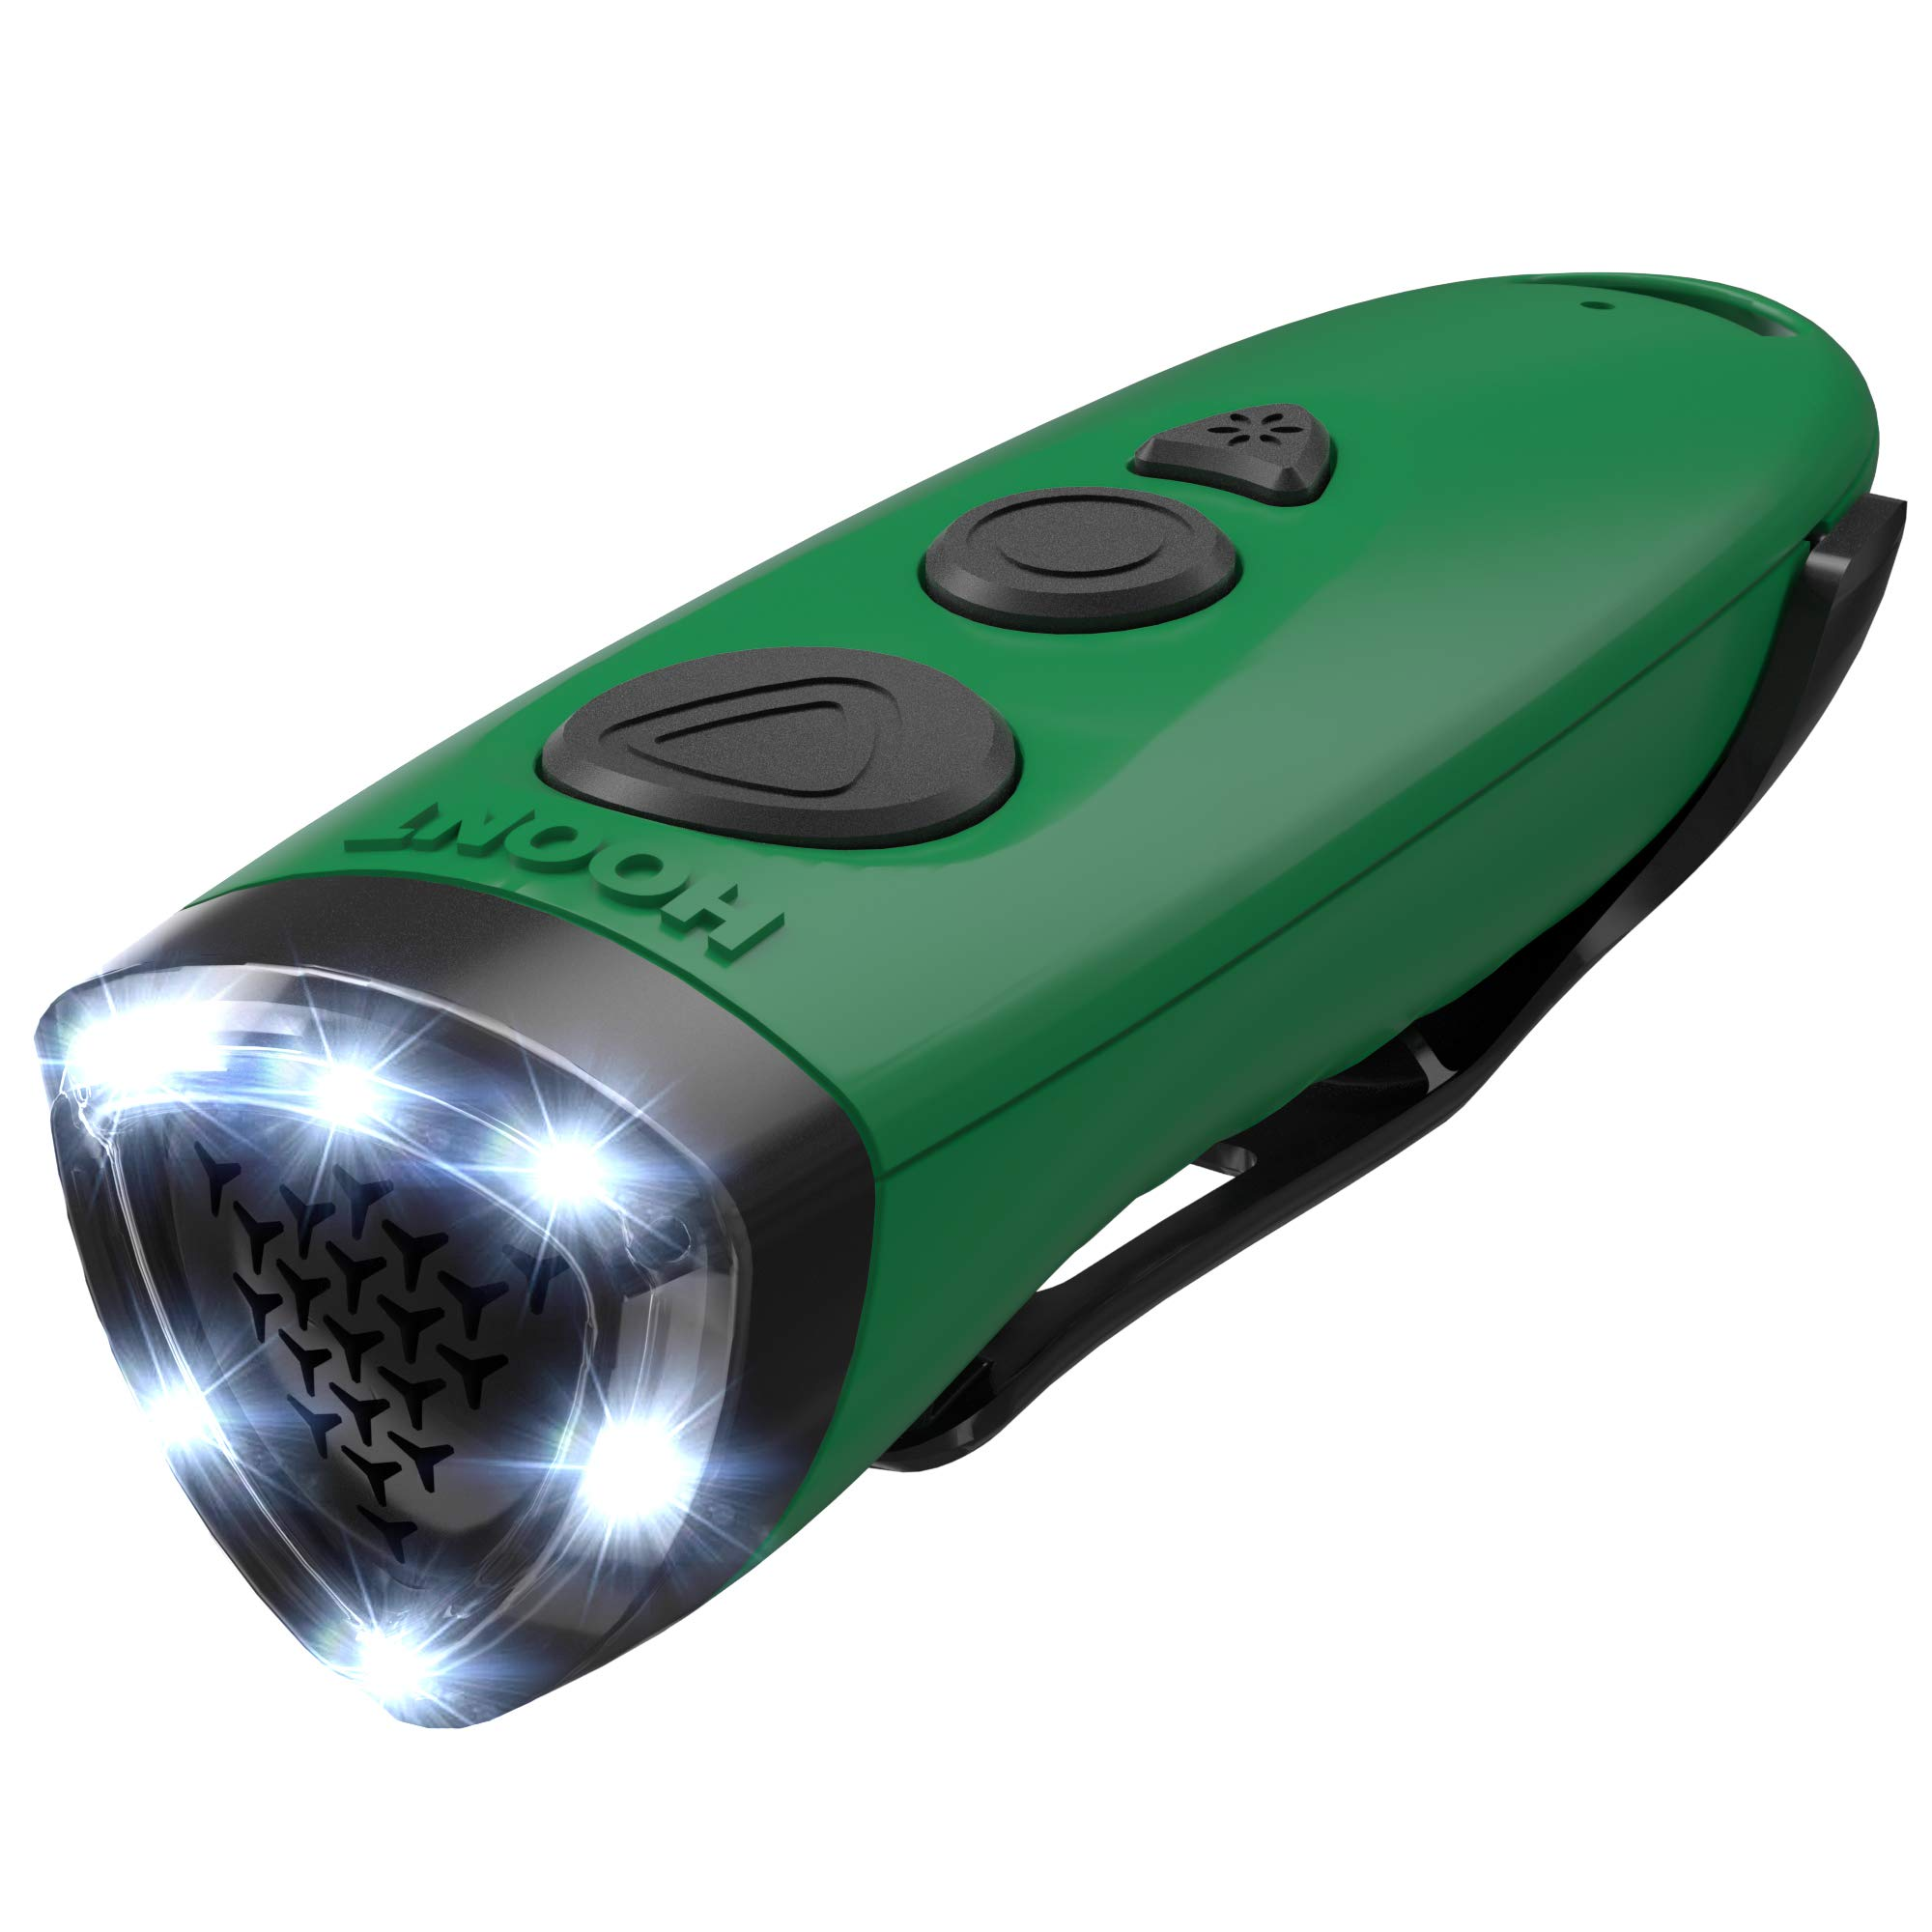 Hoont Electronic Dog Repellent and Trainer with LED Flashlight/Powerful Sonic + Ultrasonic Dog Deterrent and Bark Stopper + Dog Trainer Device/Protect Yourself from Aggressive Dogs + Train by Hoont